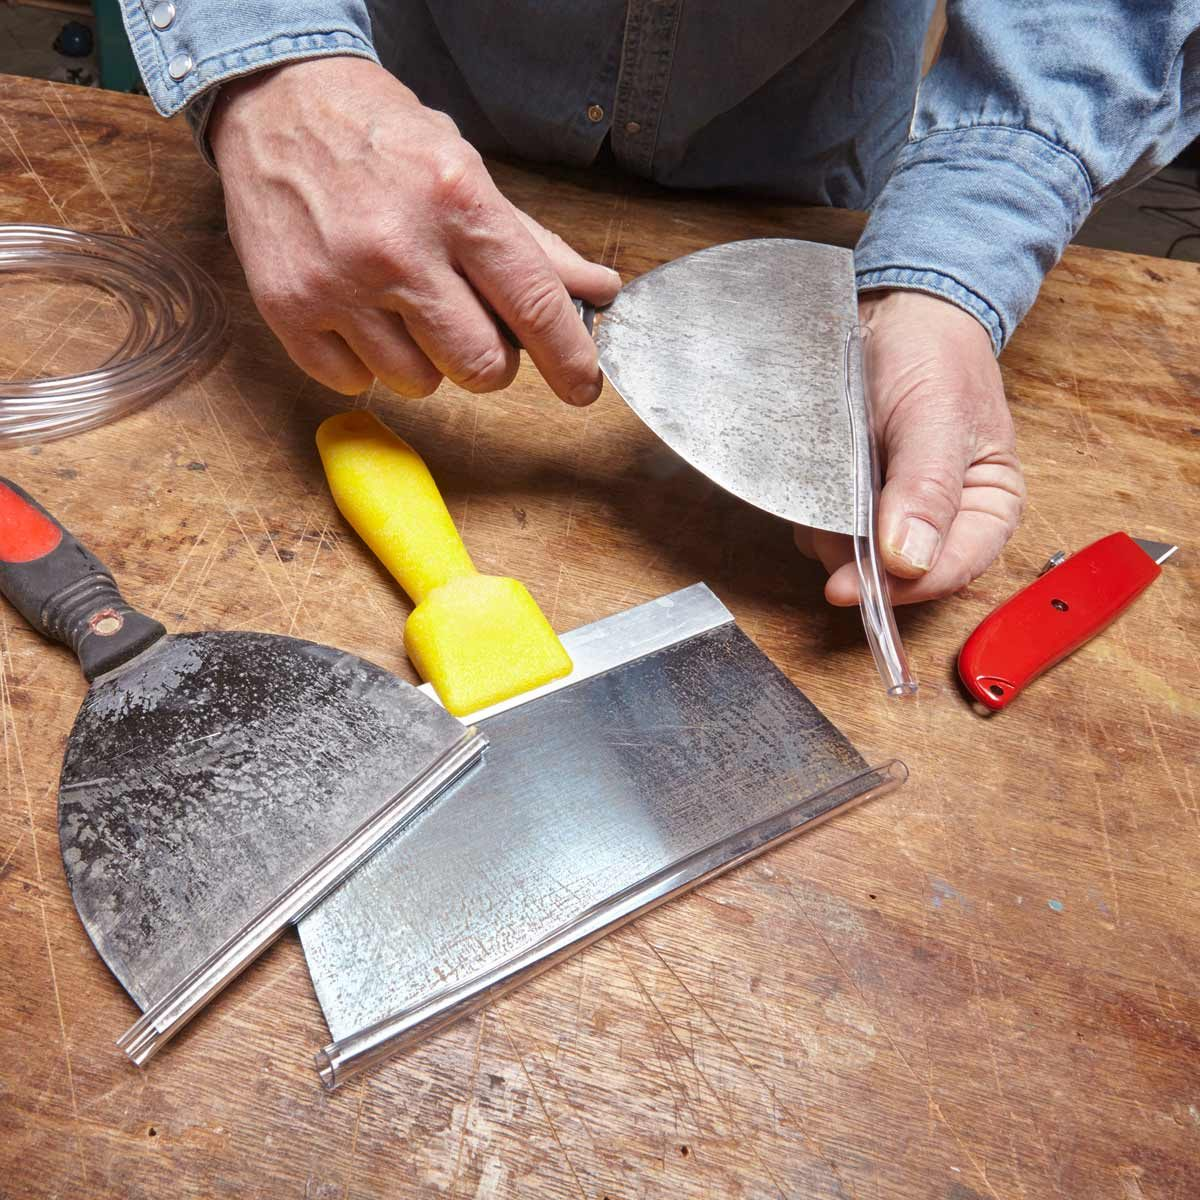 drywall knife protector — tip from the family handyman